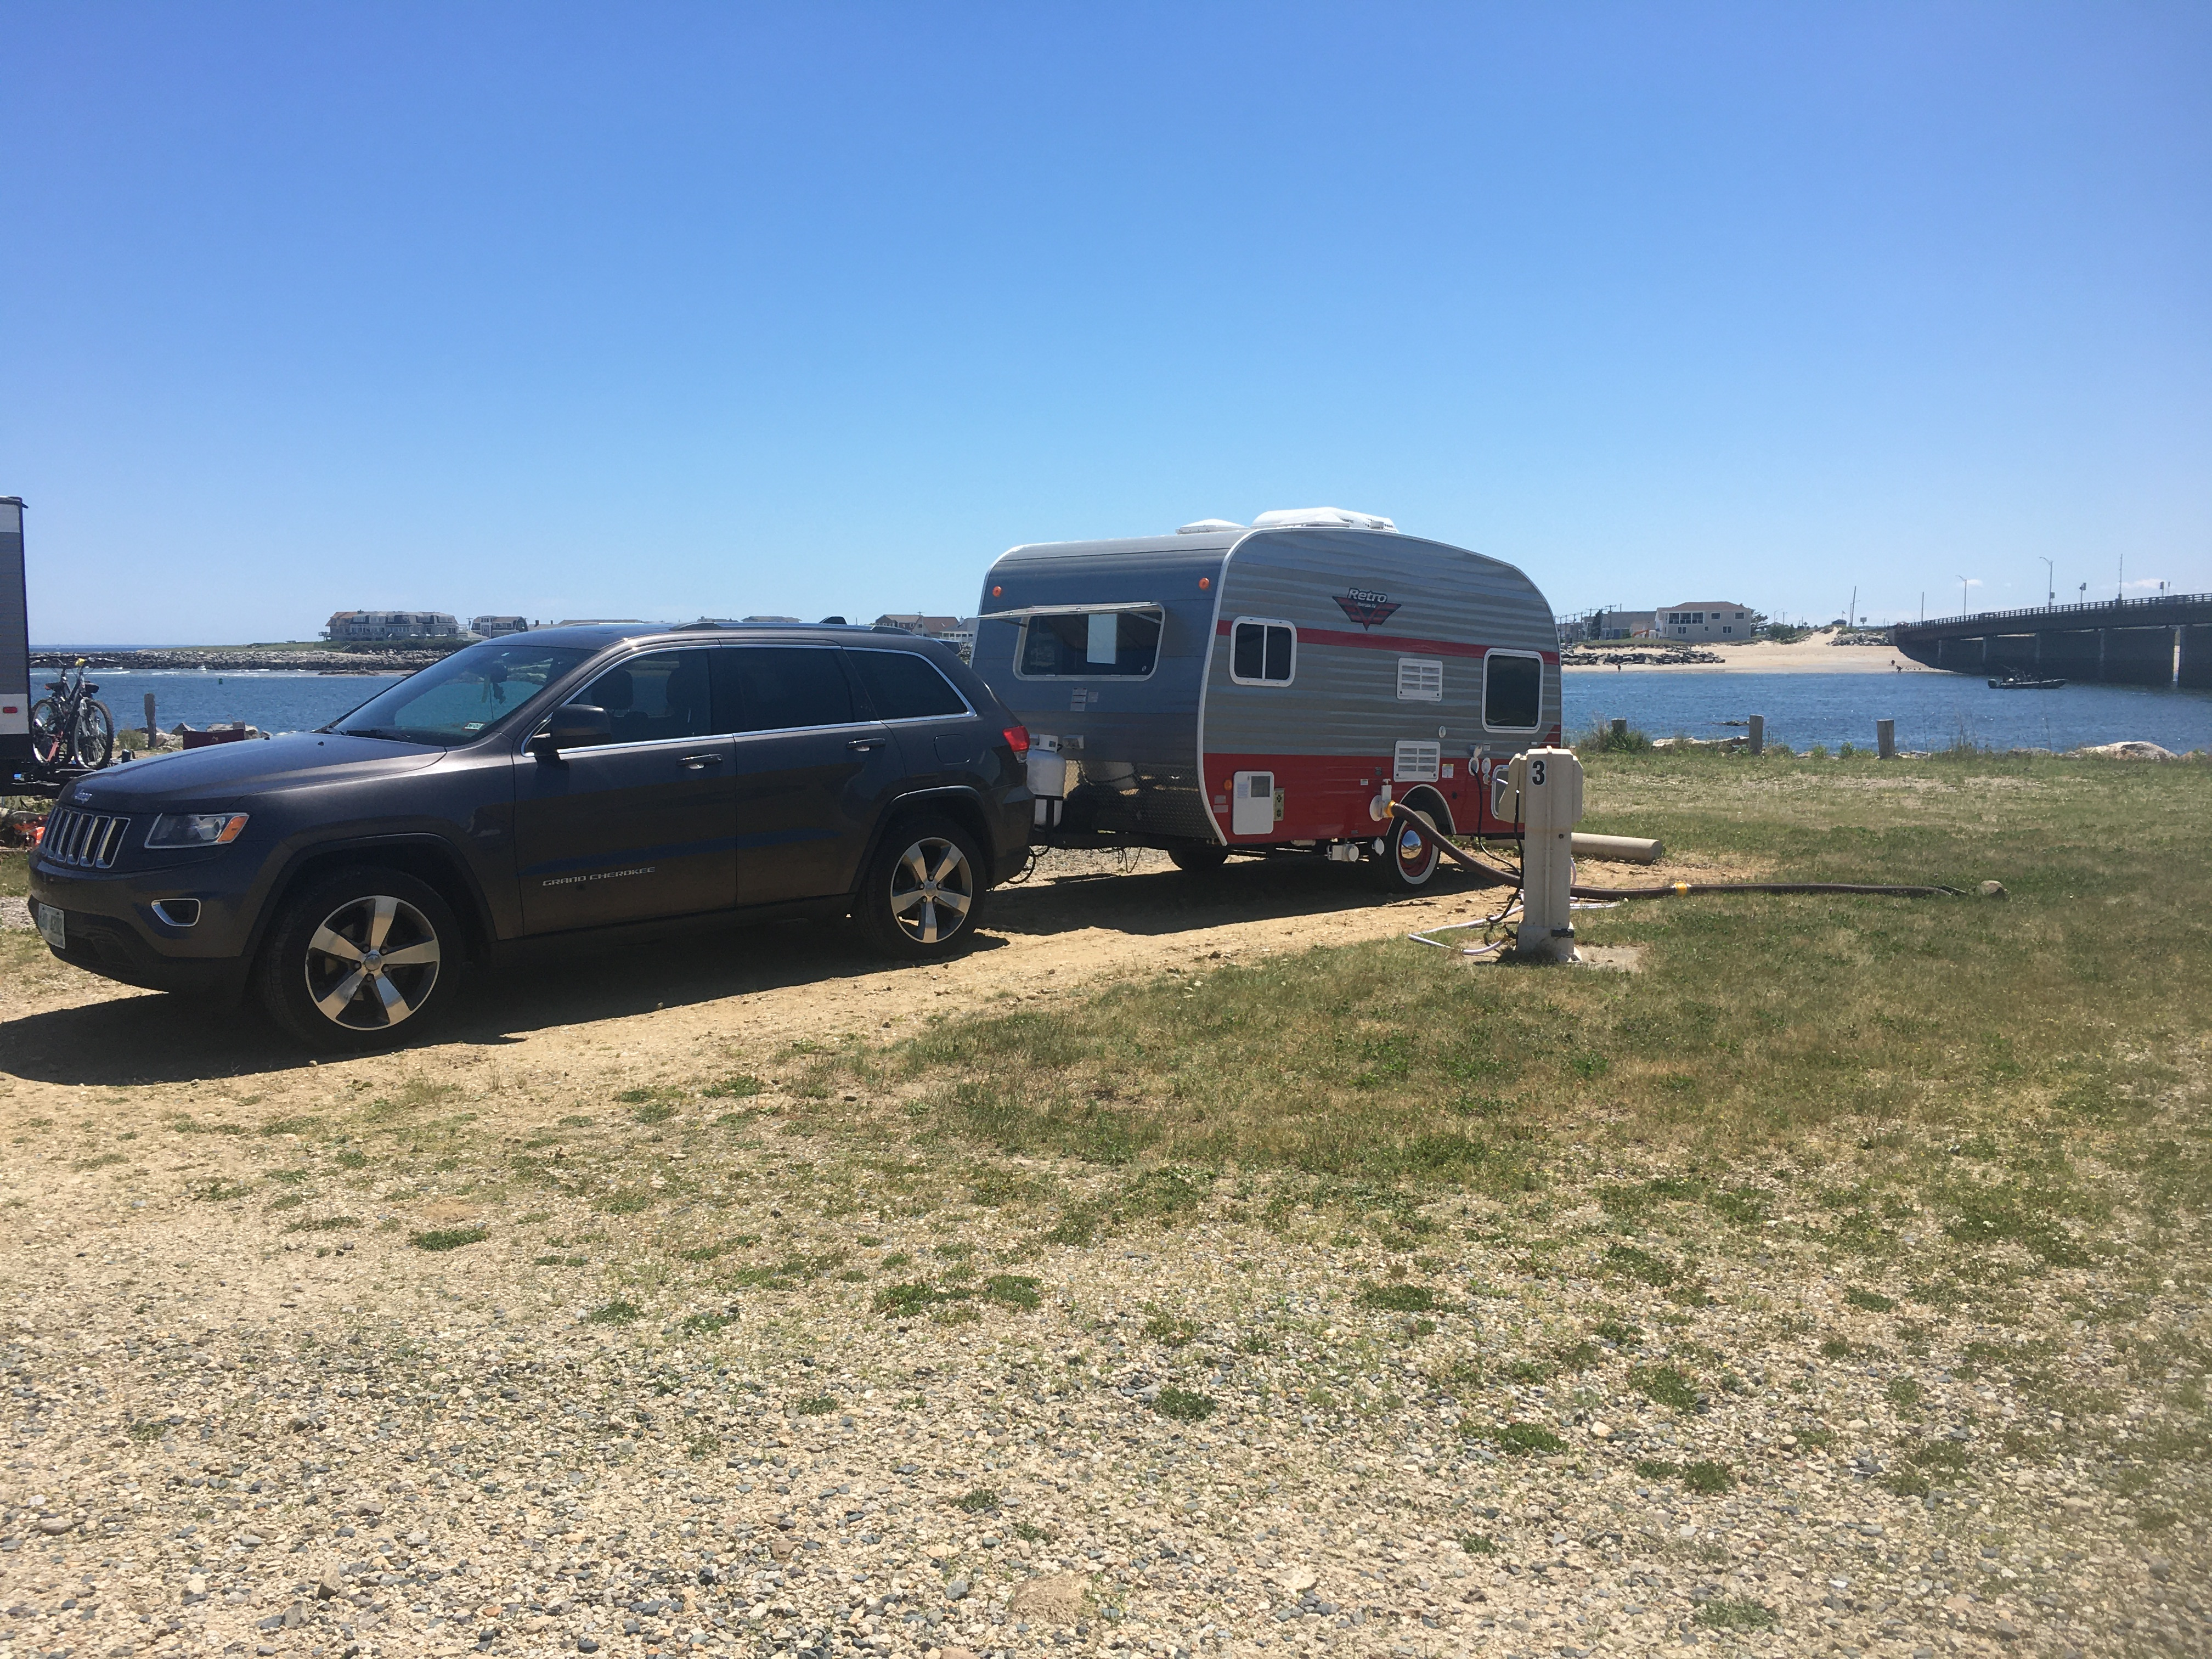 At Hampton Beach State Park, comfortably towed by a Jeep Grand Cherokee.. Riverside Rv Retro 2018